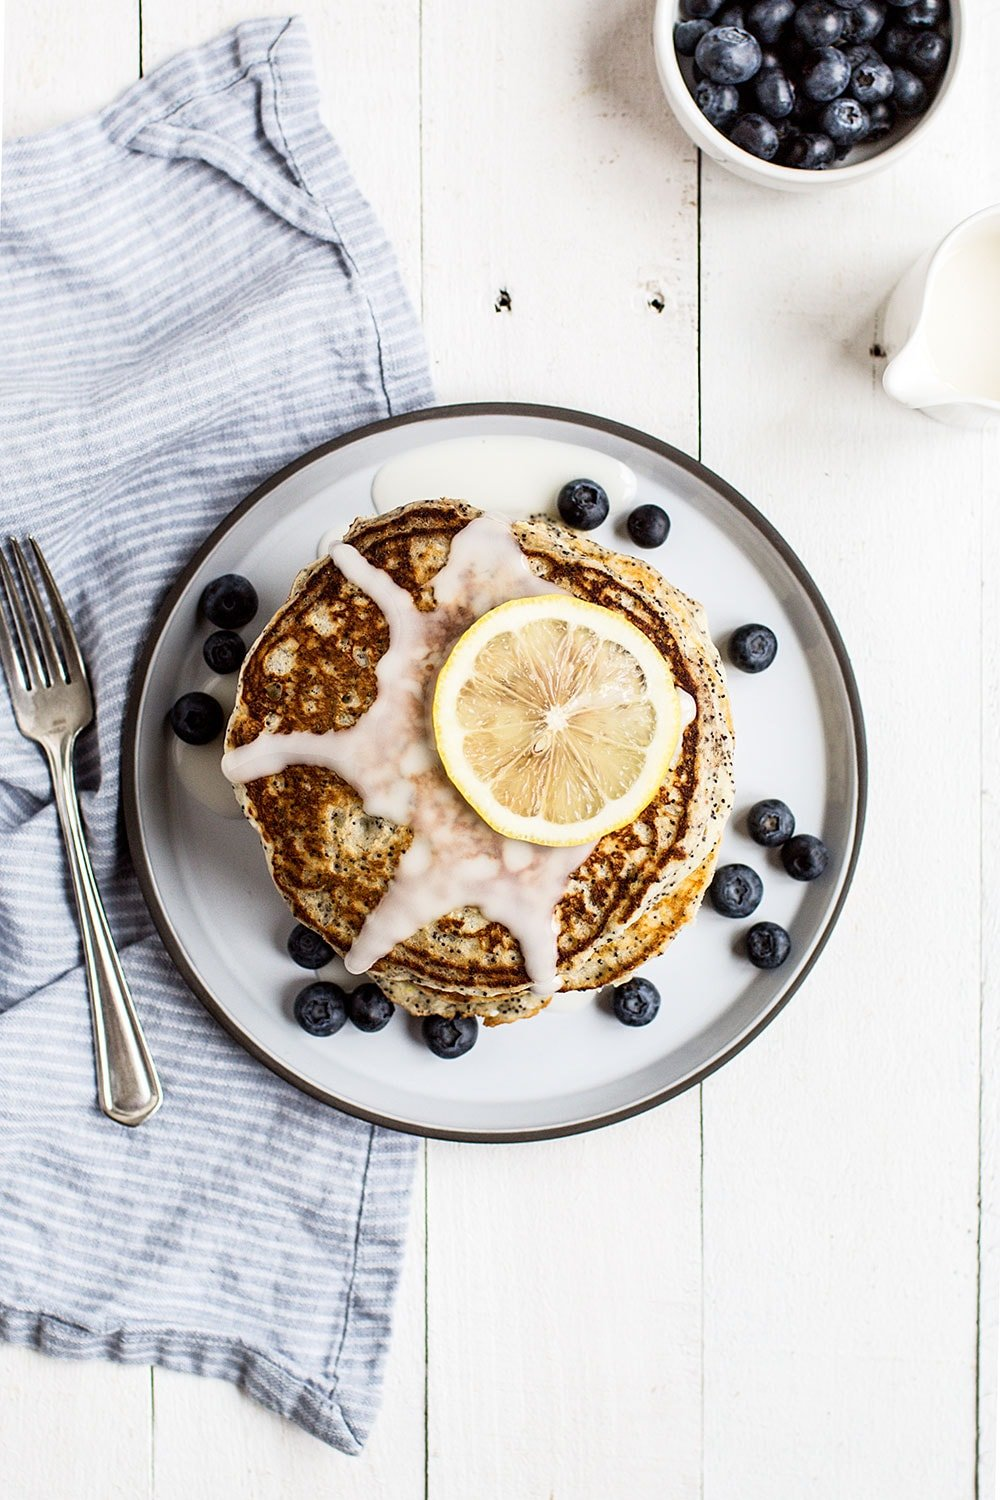 These tasty Lemon Poppy Seed Pancakes are soft and fluffy with bites of poppy seeds throughout. They will soon become your family's favorite breakfast!